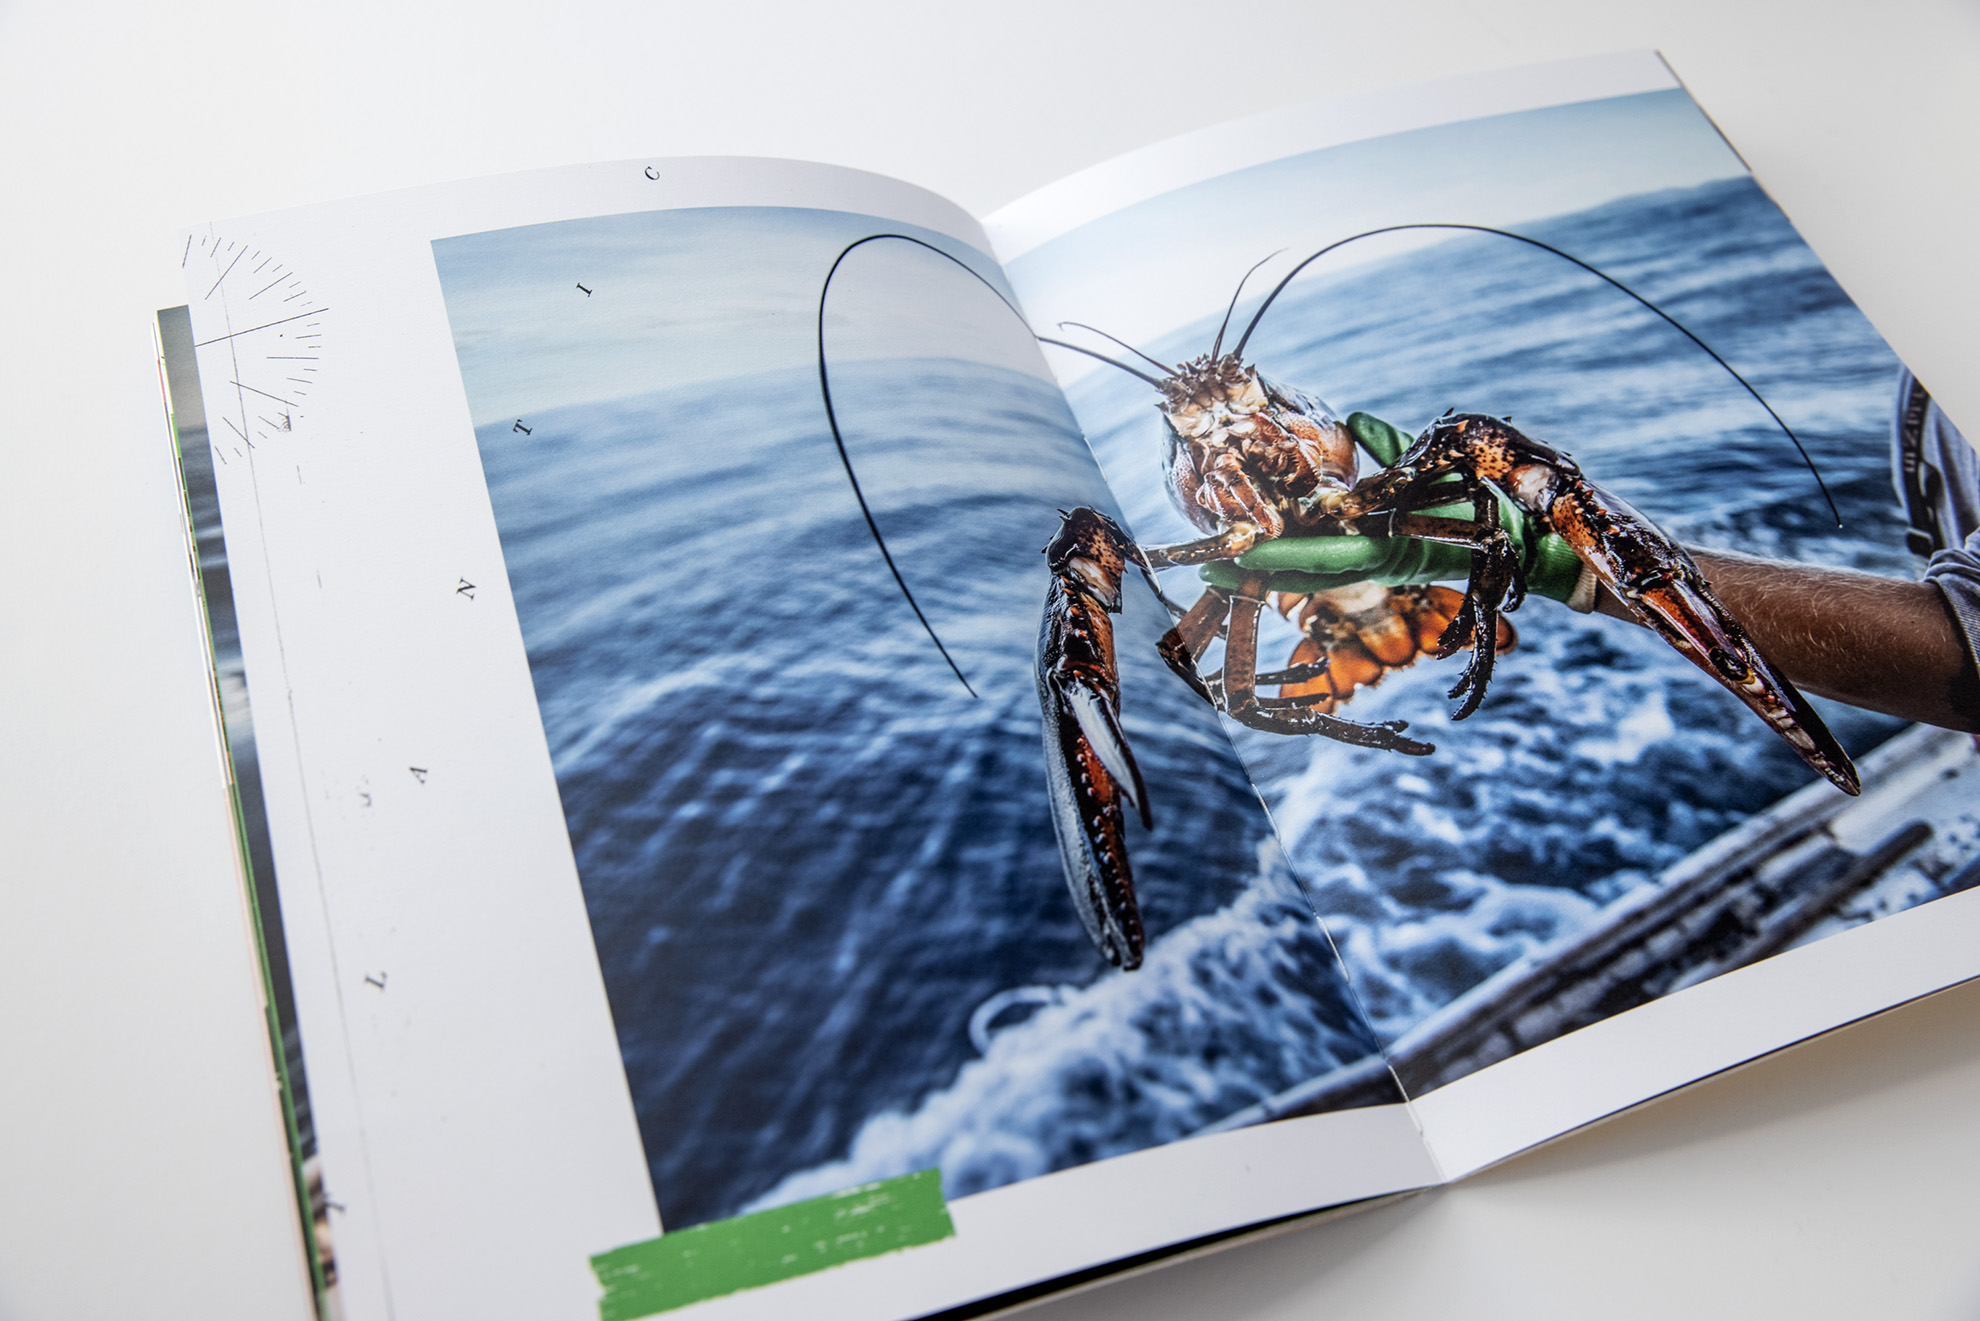 Tadd Myers promo booklet of the Lobstermen of Little Cranberry Island with a lobster up close